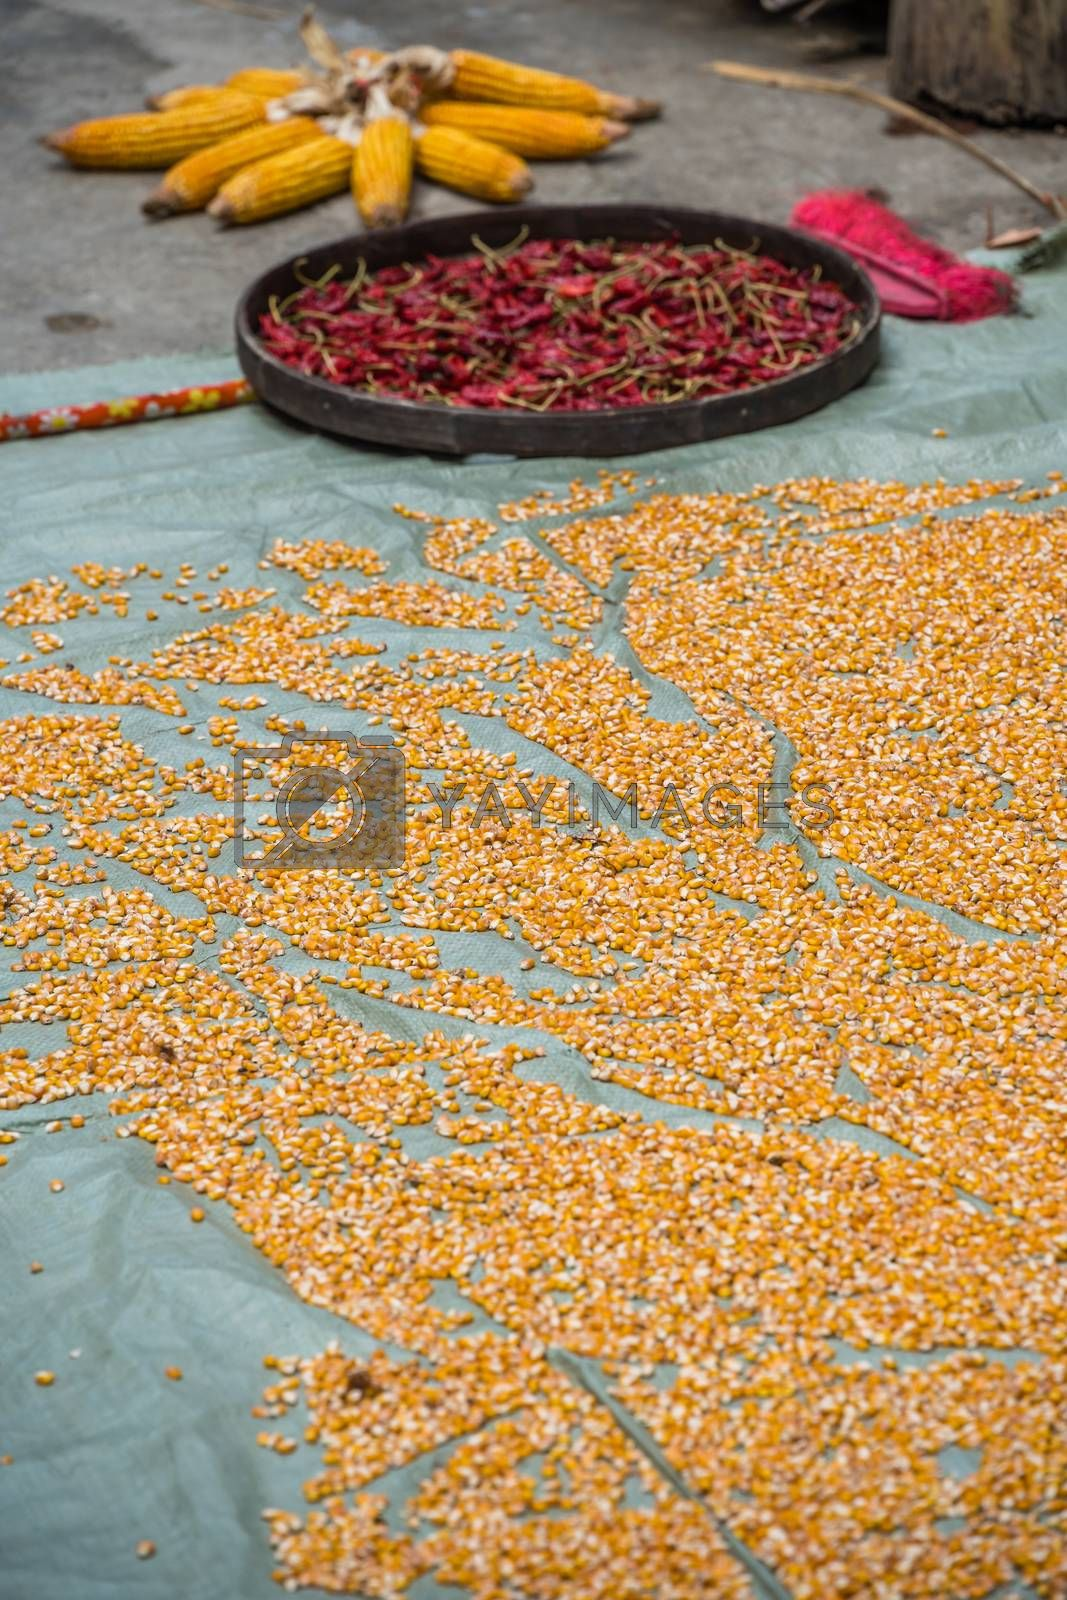 High angle shot of dry chili peppers with corn seeds on the grou by pawopa3336